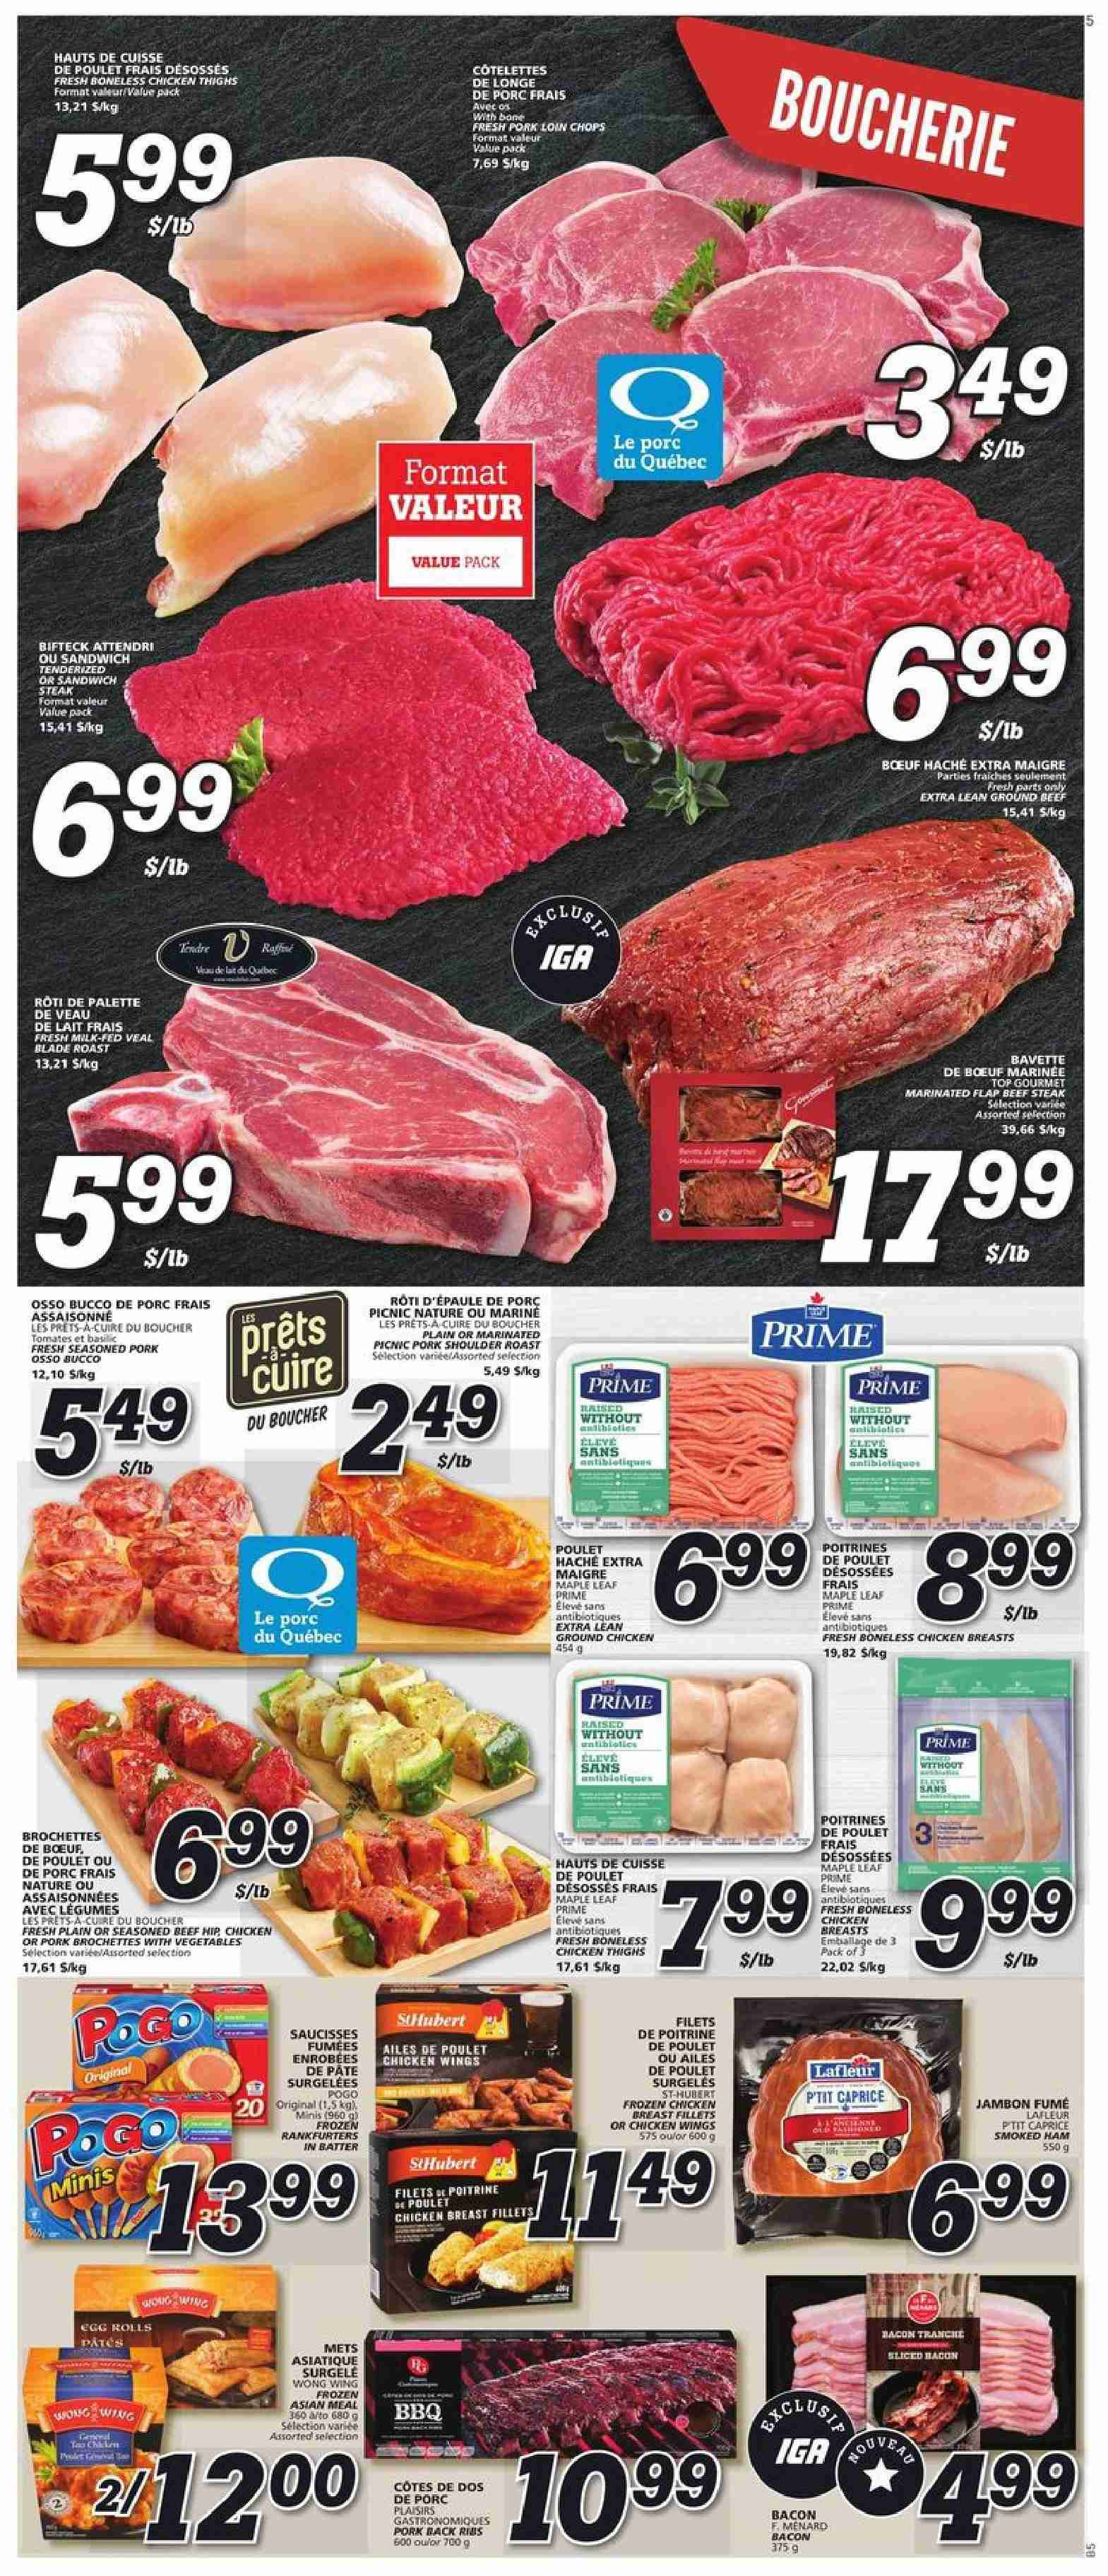 IGA Flyer  - September 27, 2018 - October 03, 2018. Page 3.